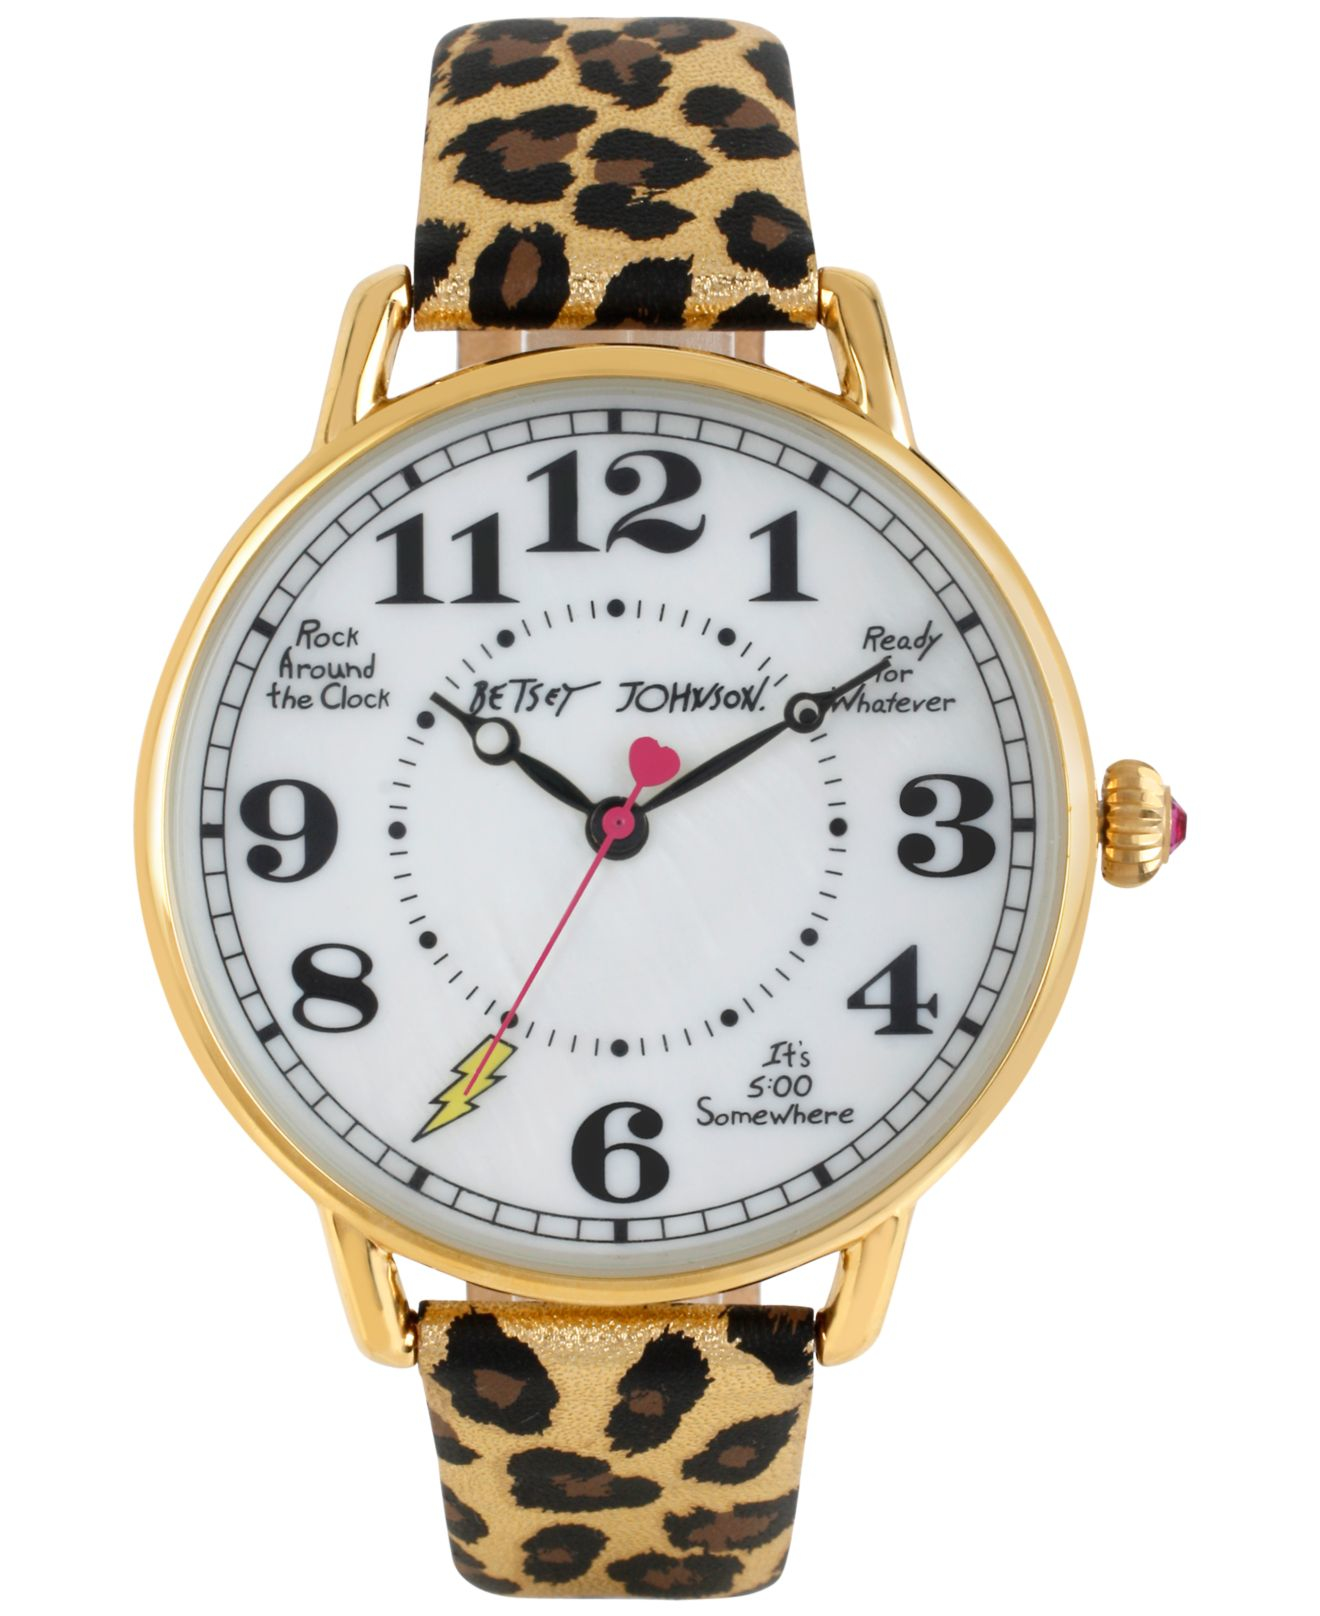 betsey johnson s gold tone leopard print leather